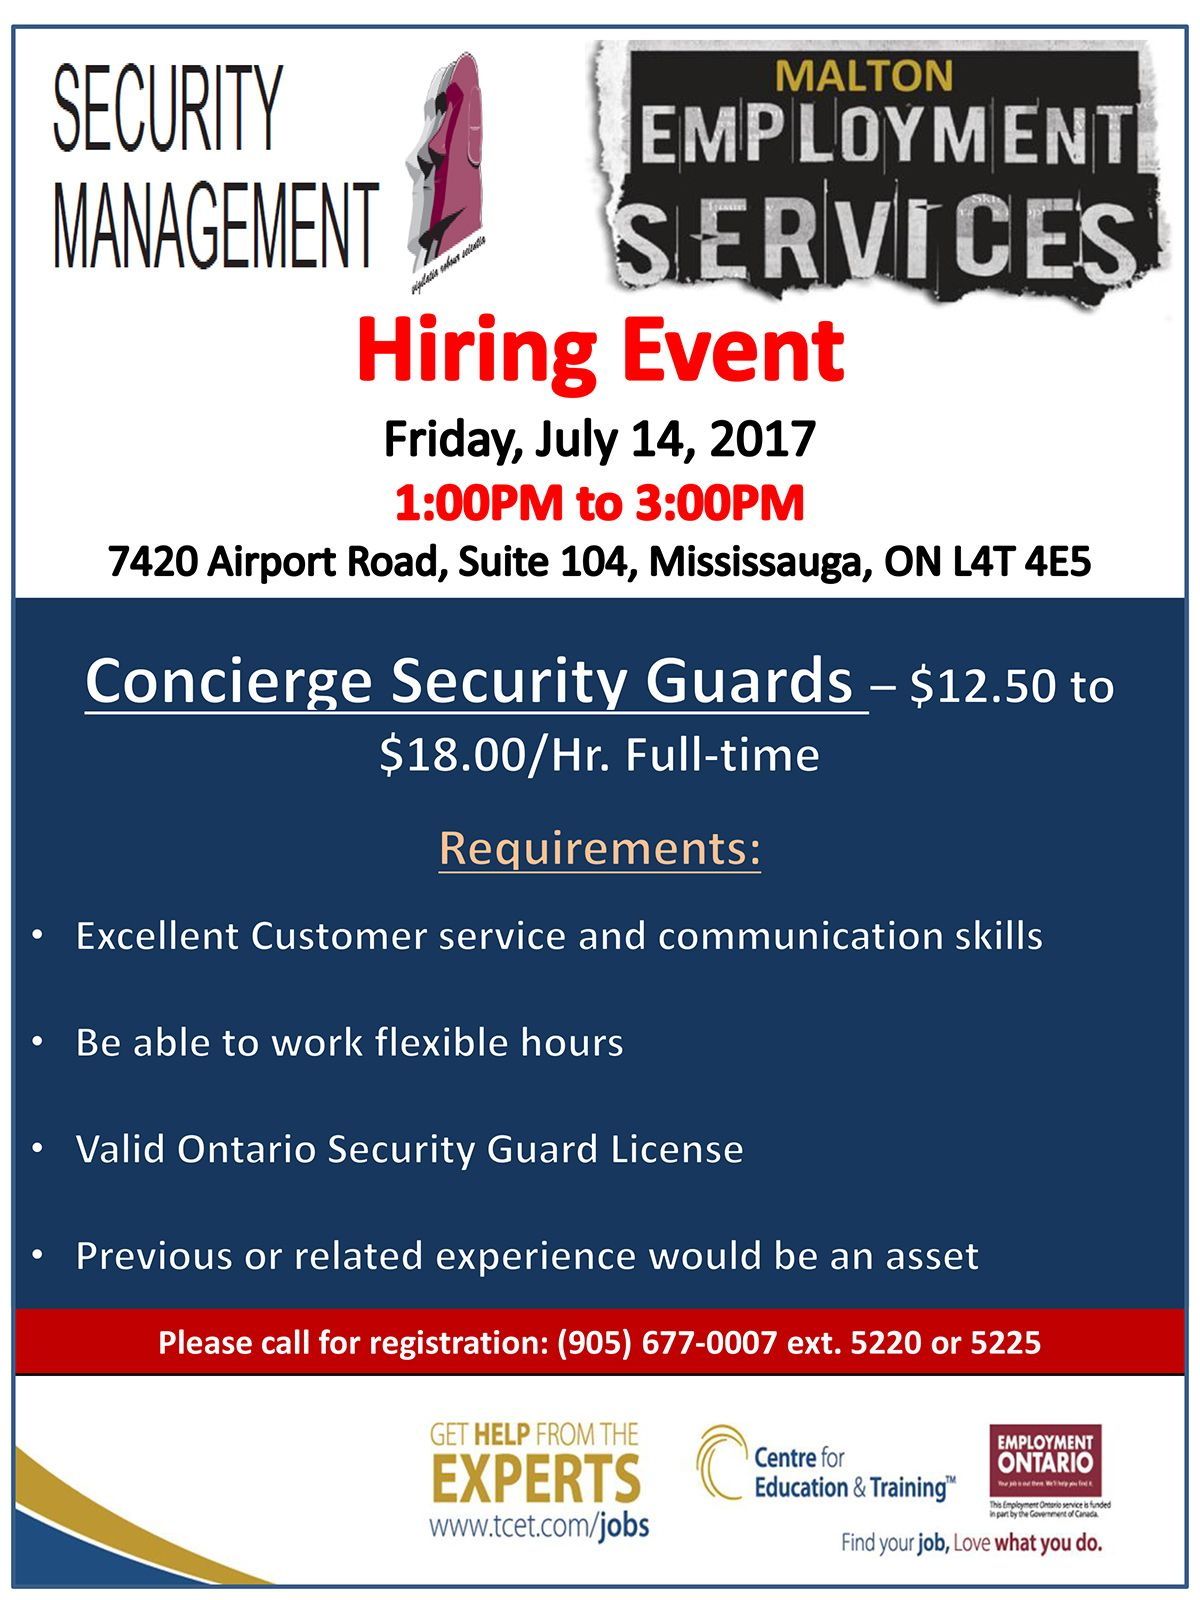 Thinking of a career in the security field? Don't miss the